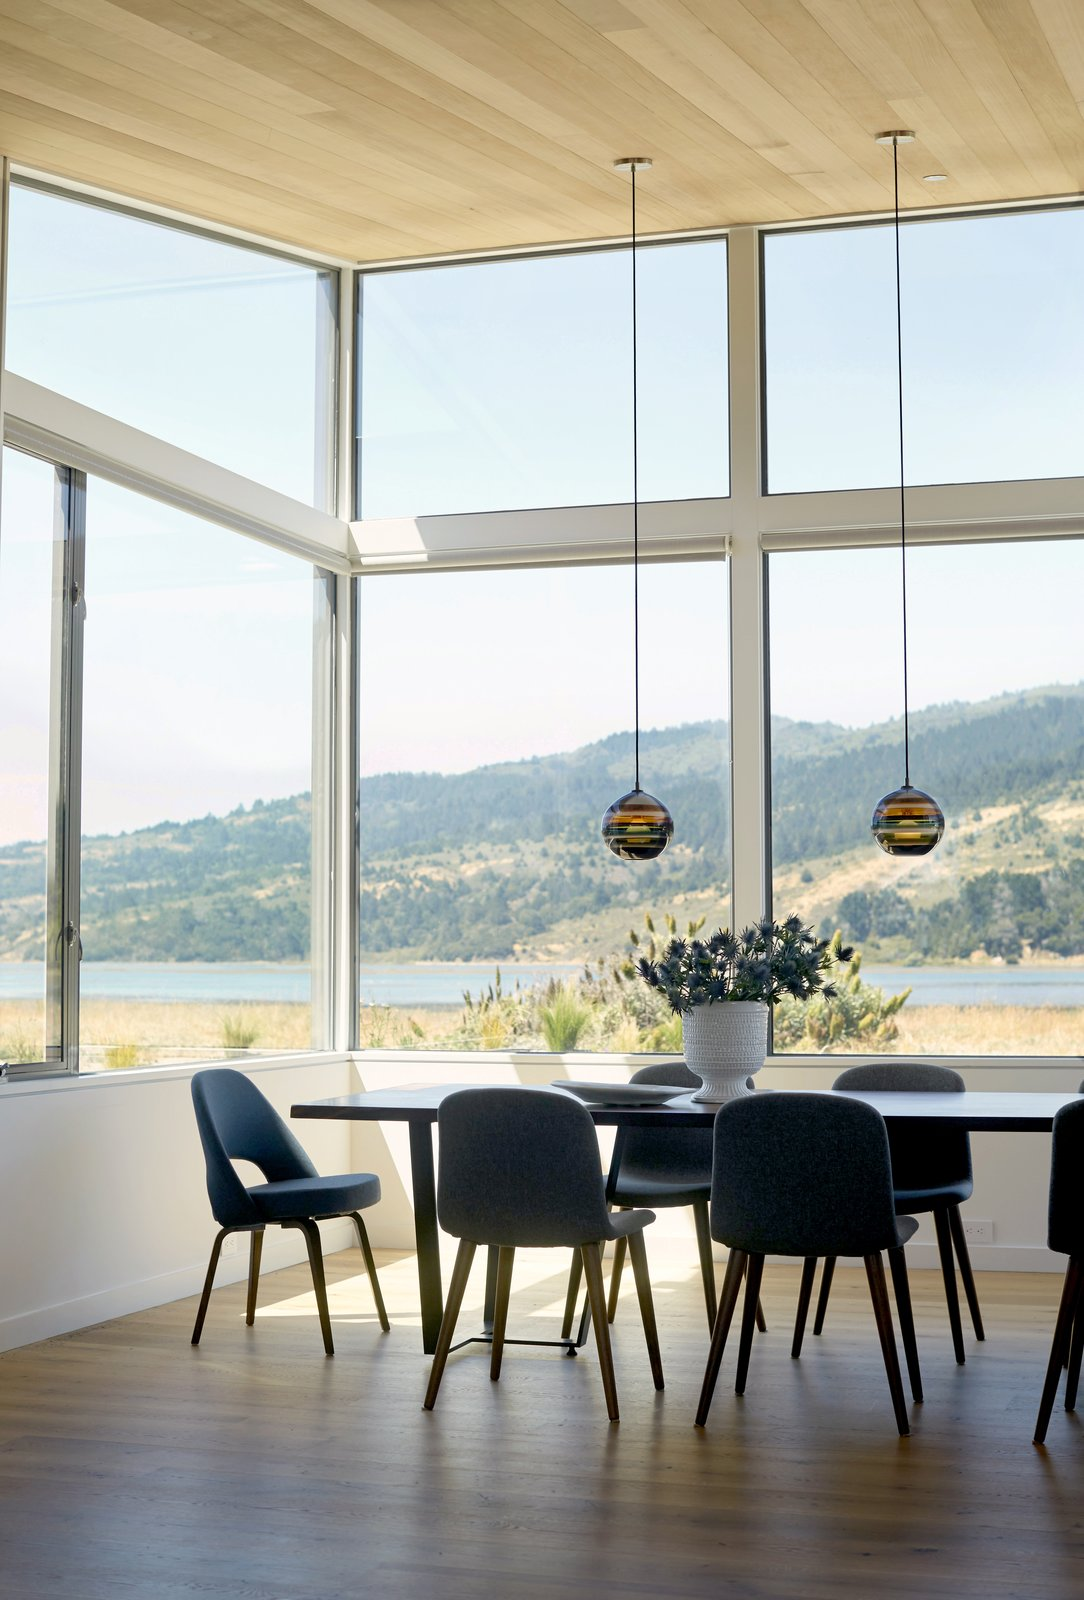 #TurnbullGriffinHaesloop #interior #diningroom #window   Stinson Beach Lagoon Residence by Turnbull Griffin Haesloop Architects